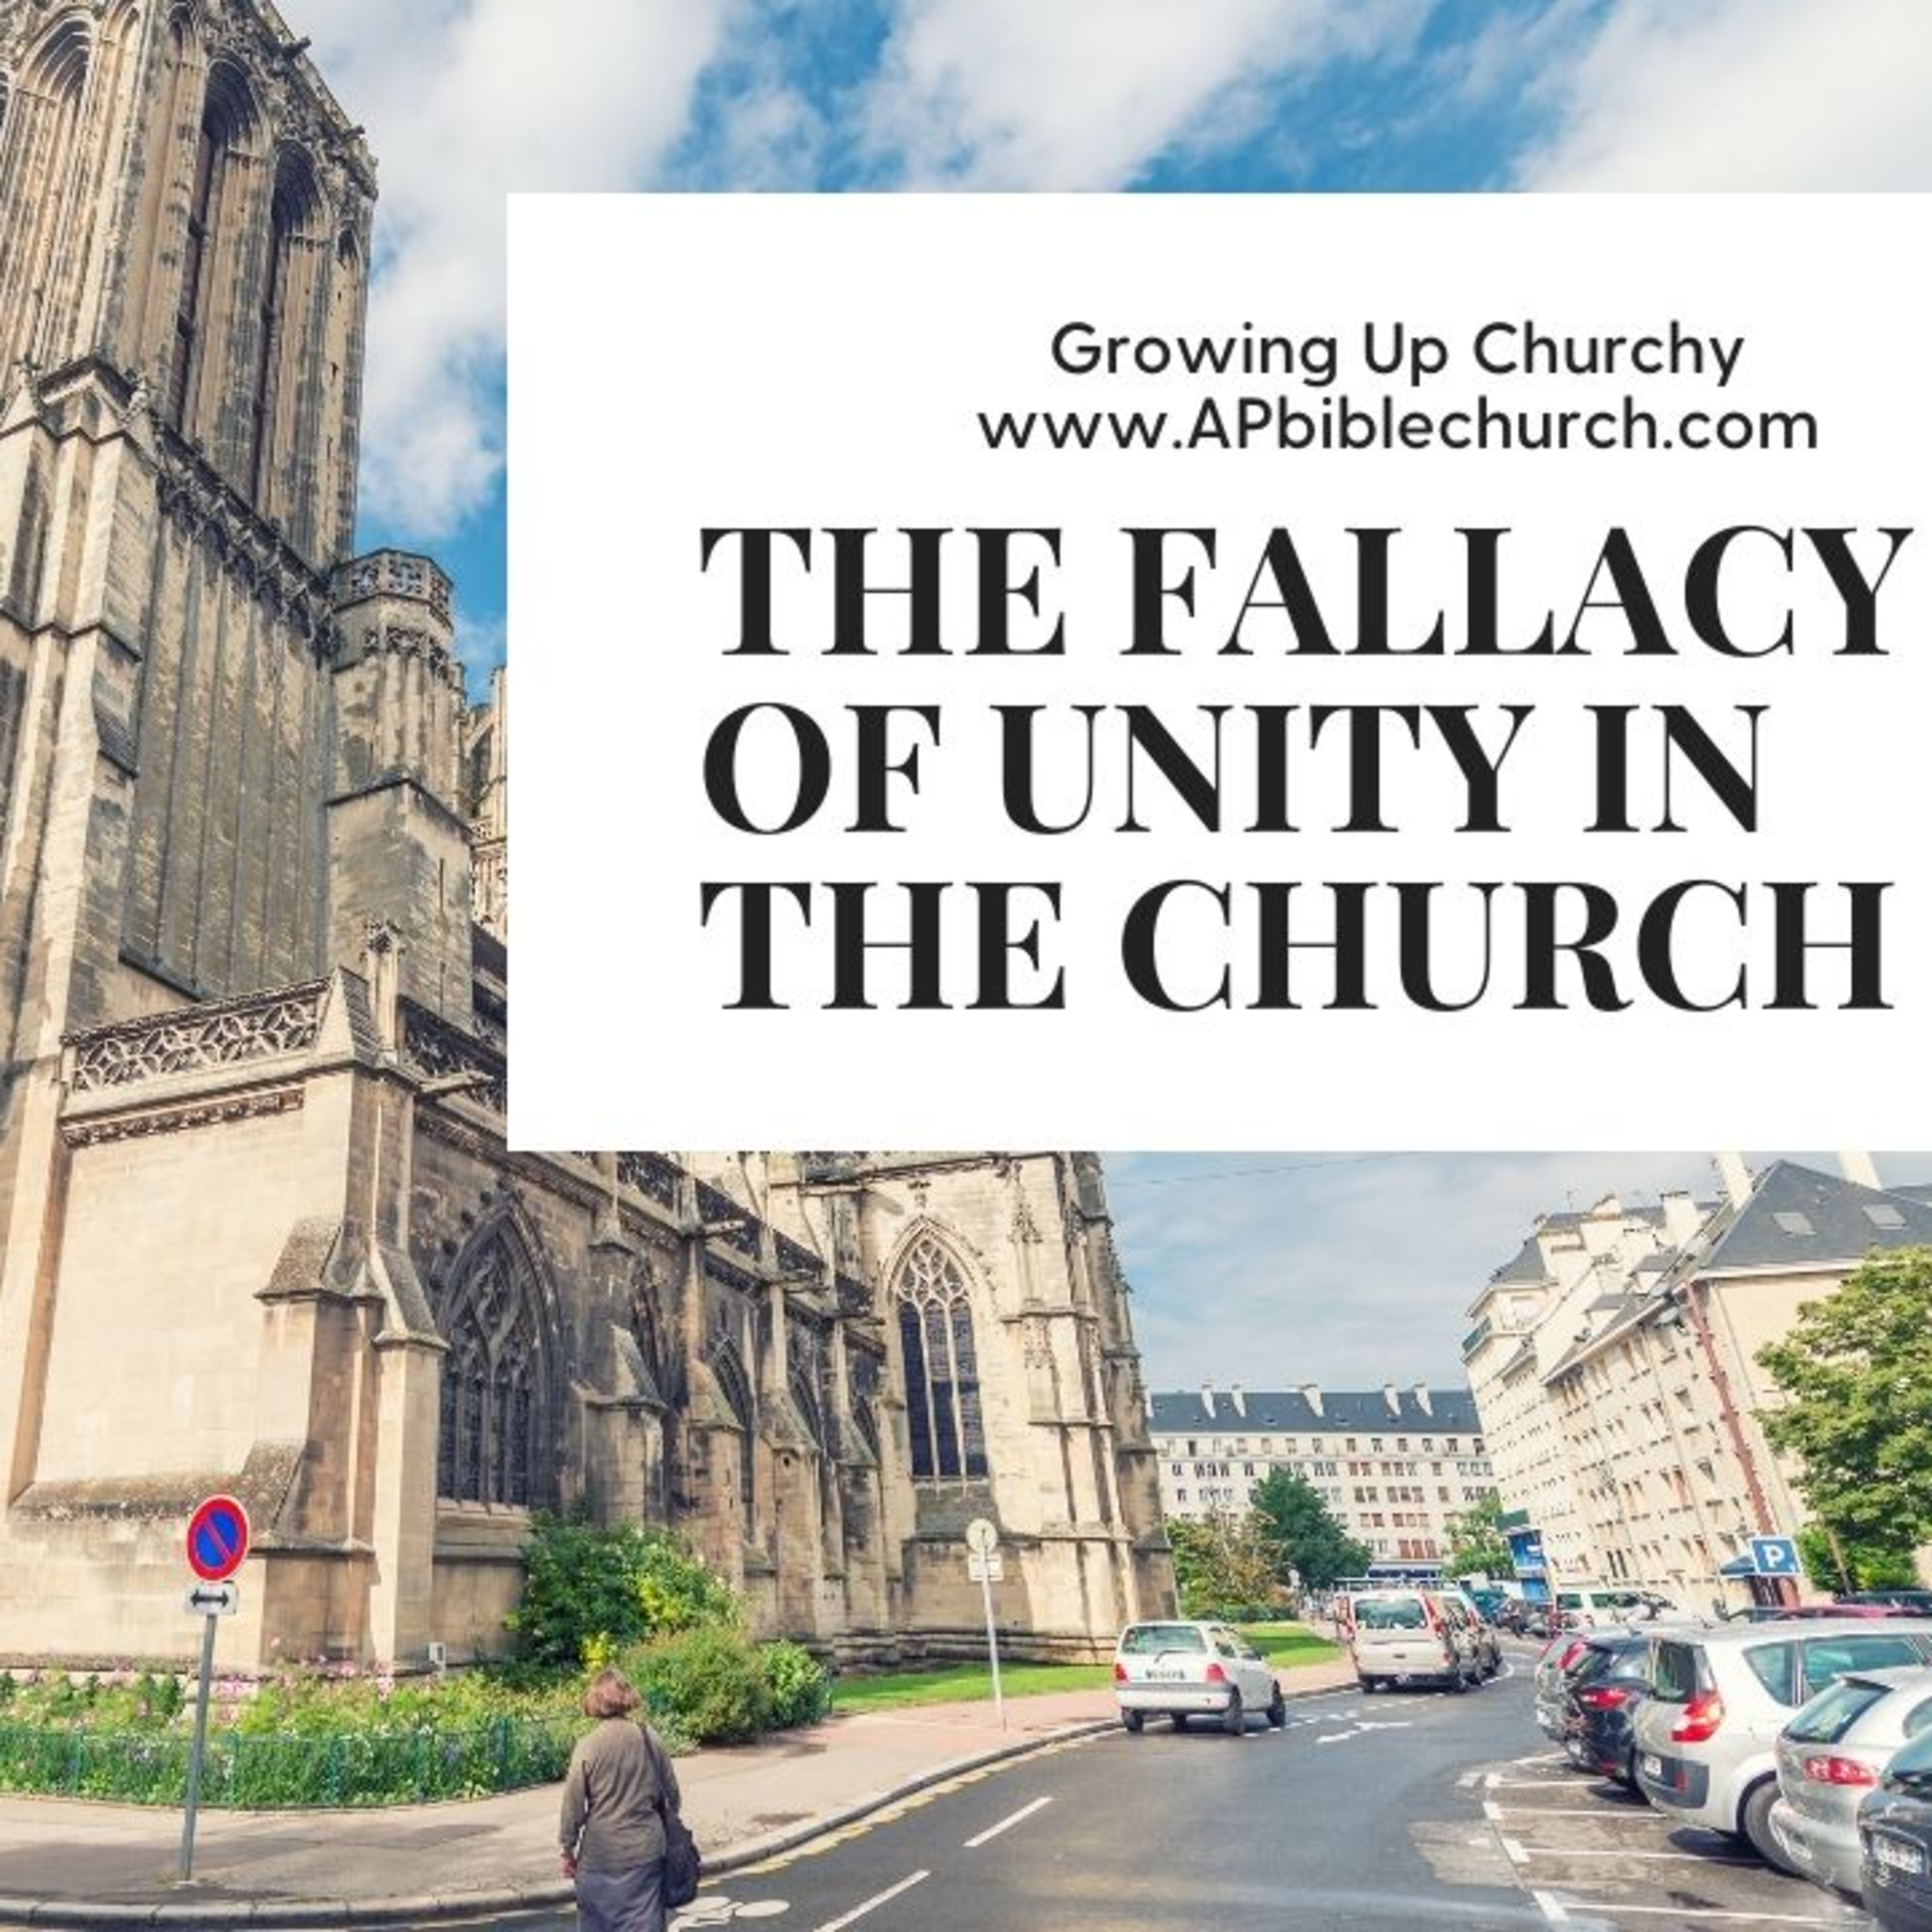 The Fallacy of Unity in the Church